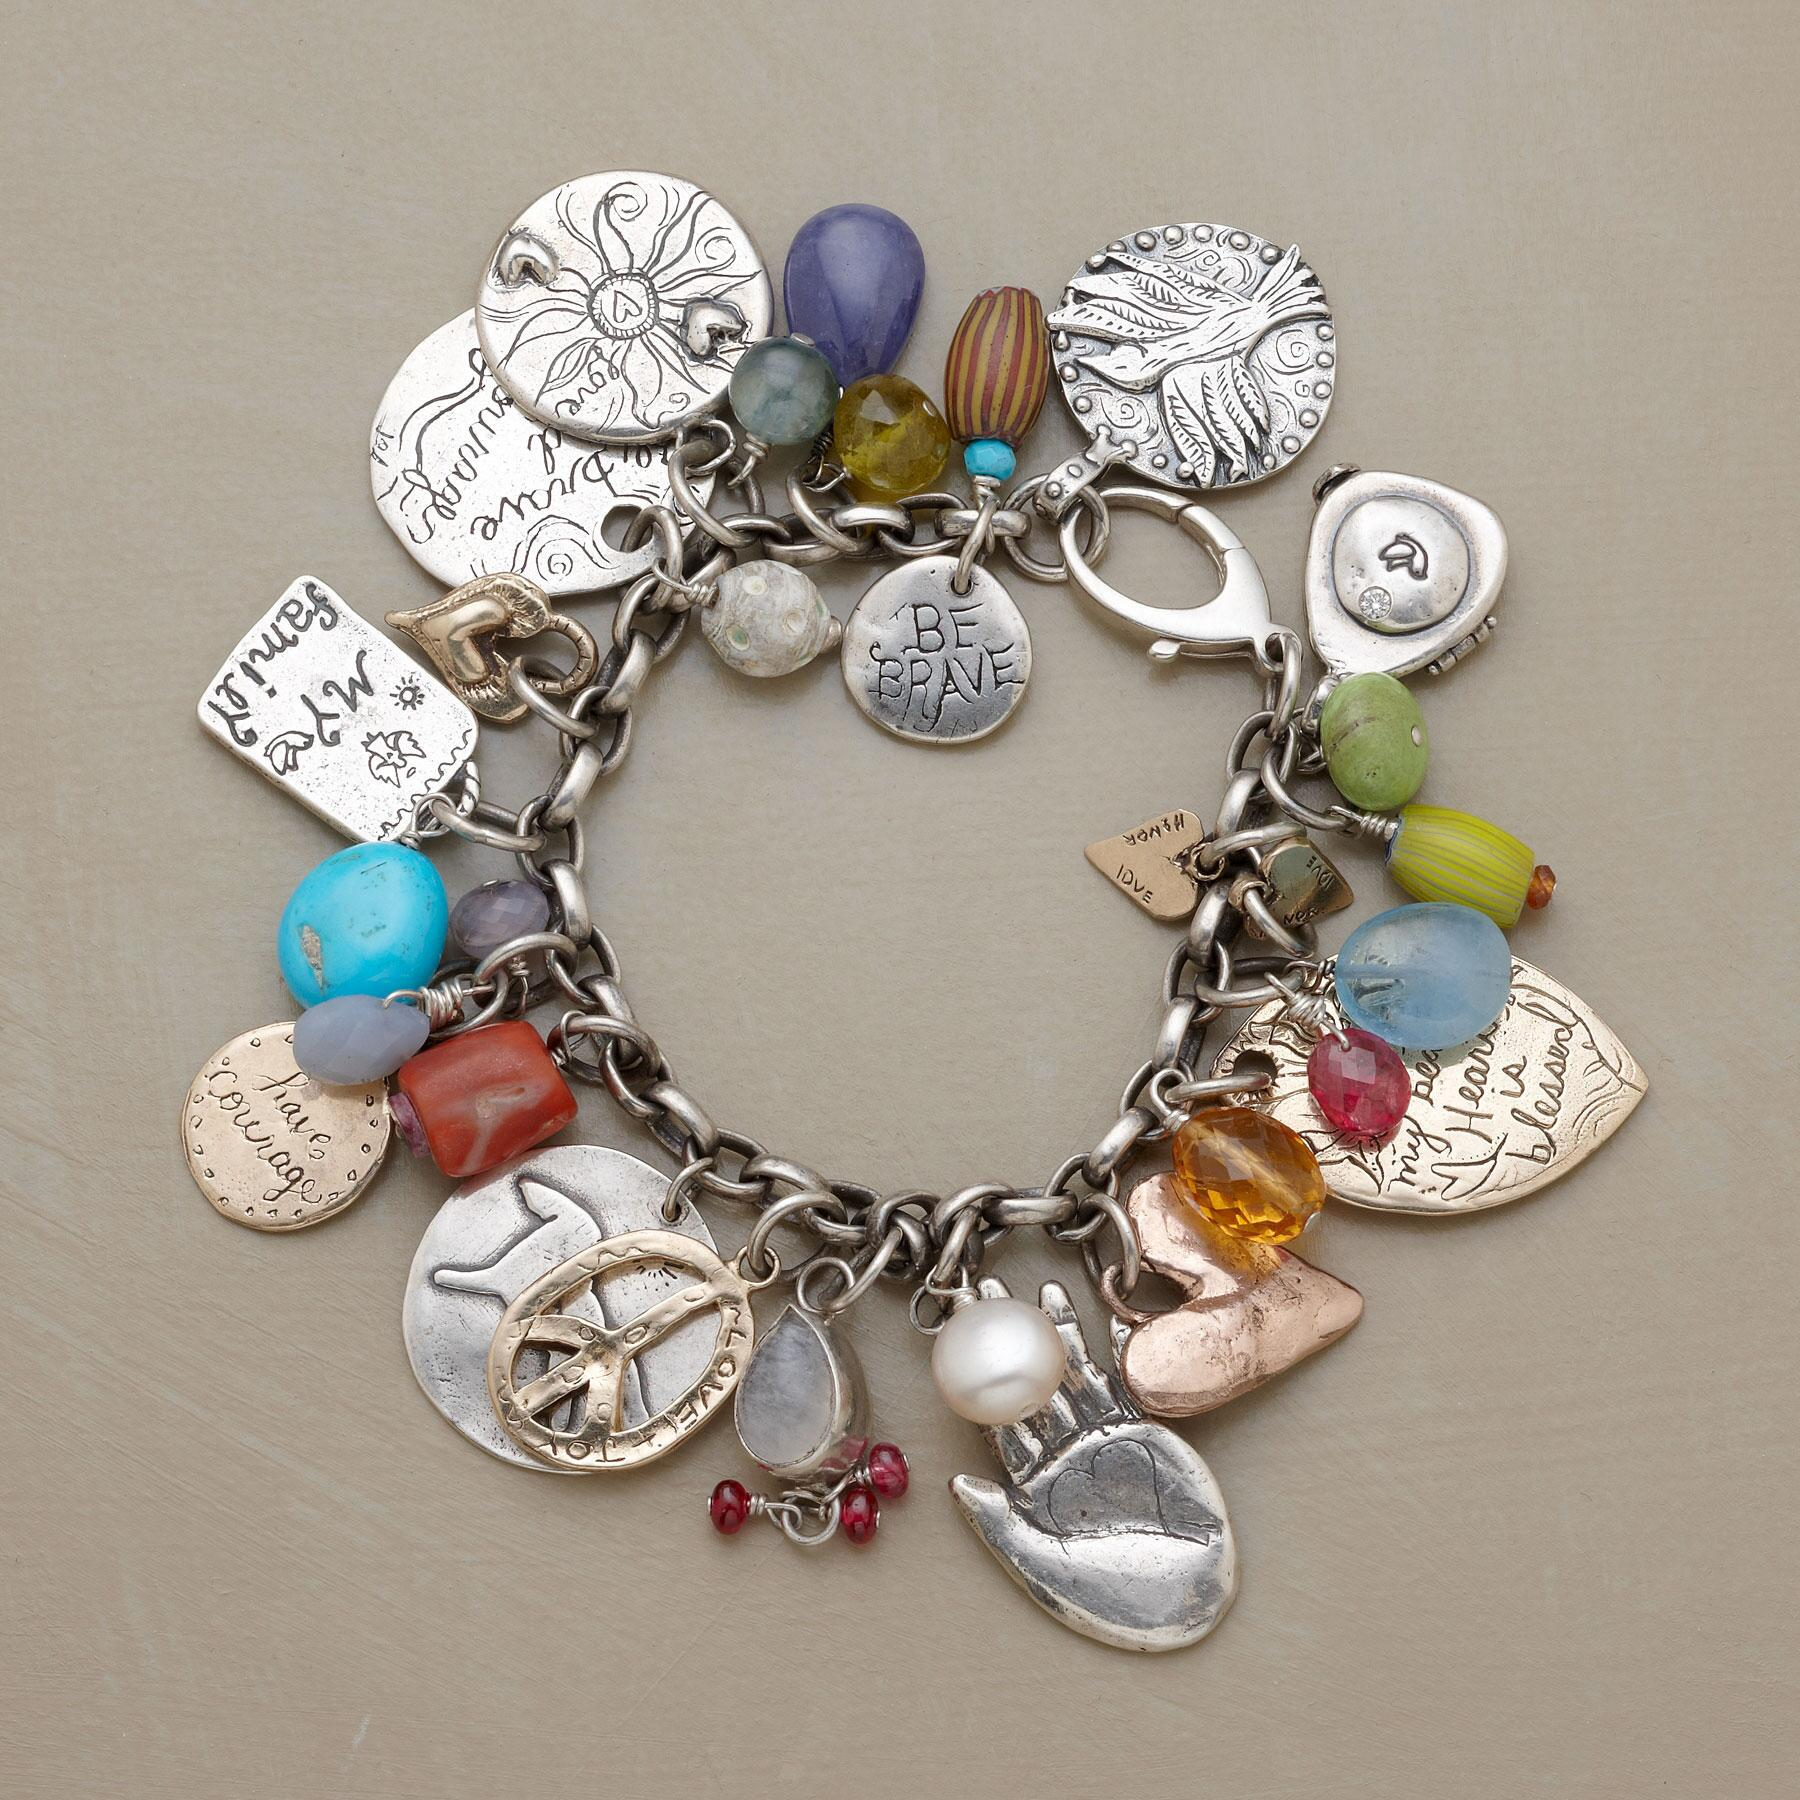 COLLECTORS ITEM BRACELET: View 1